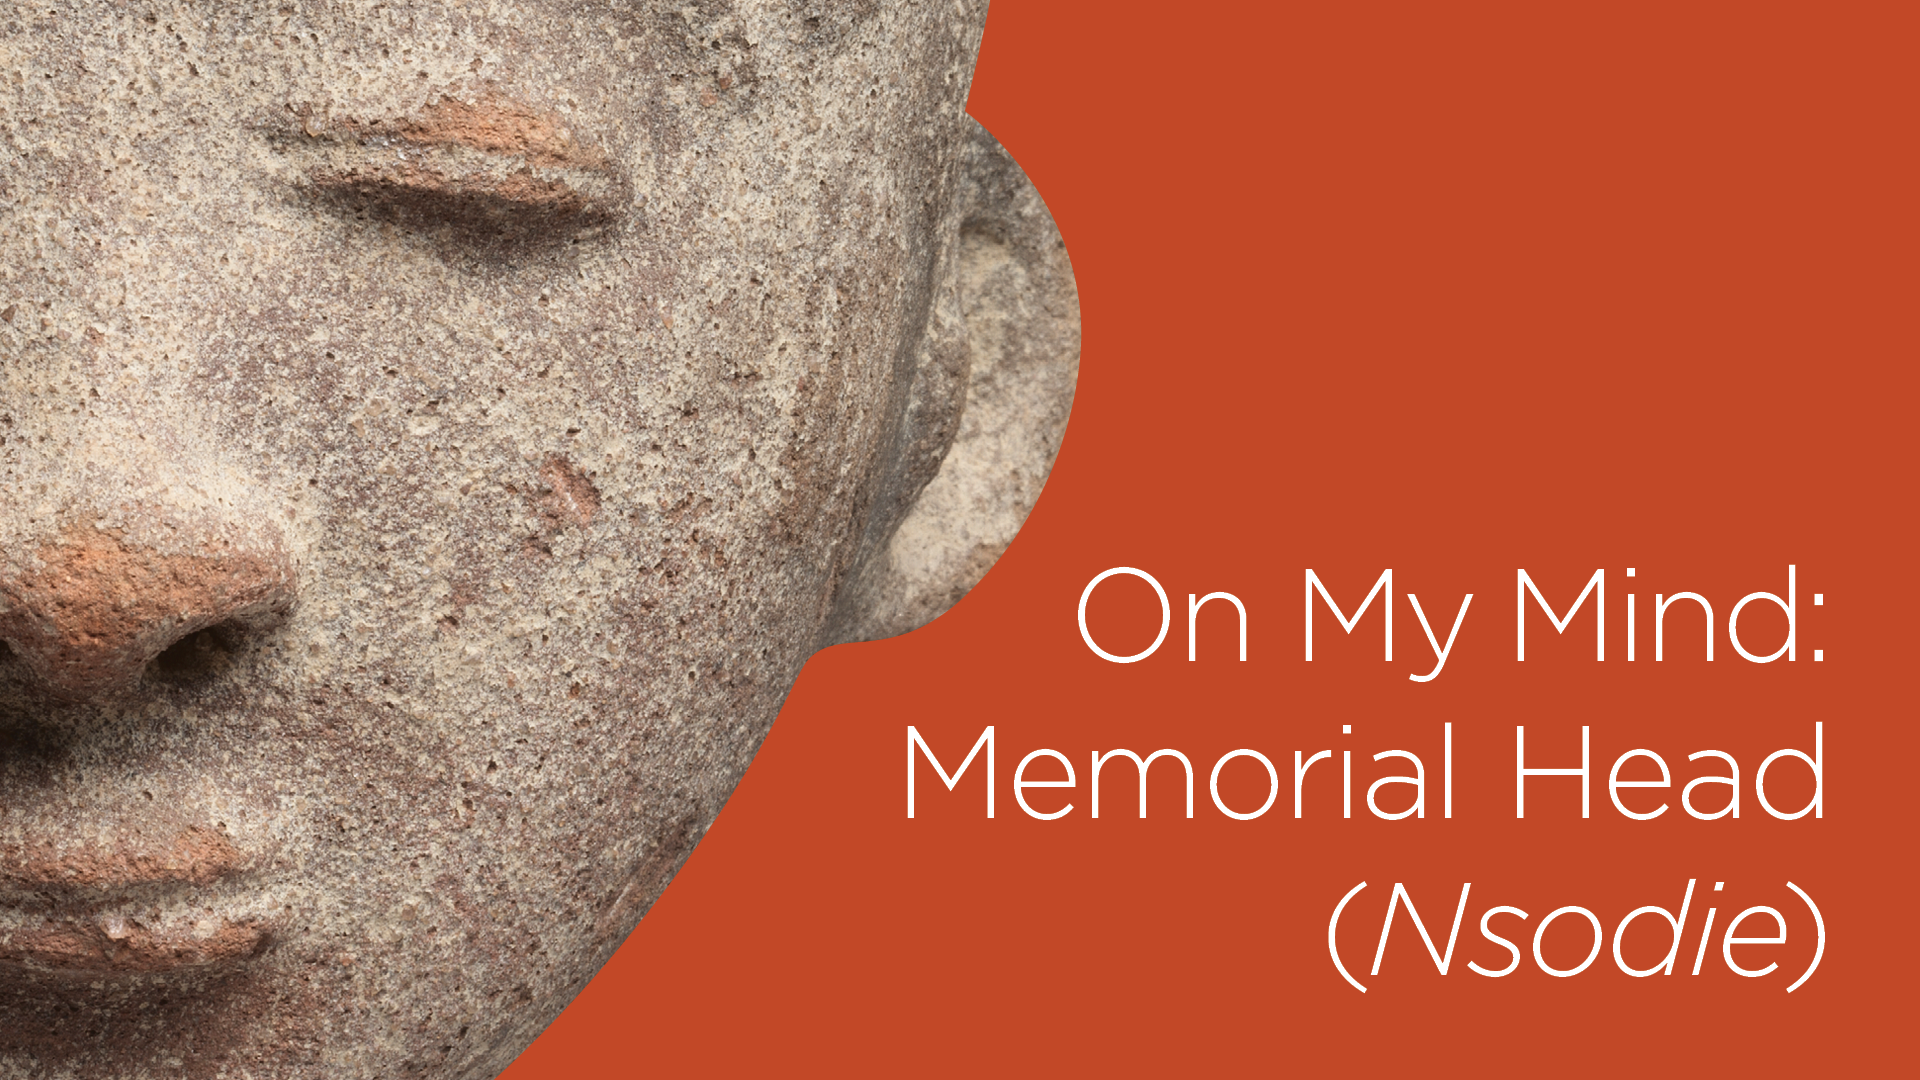 On My Mind: Memorial Head (nsodie)